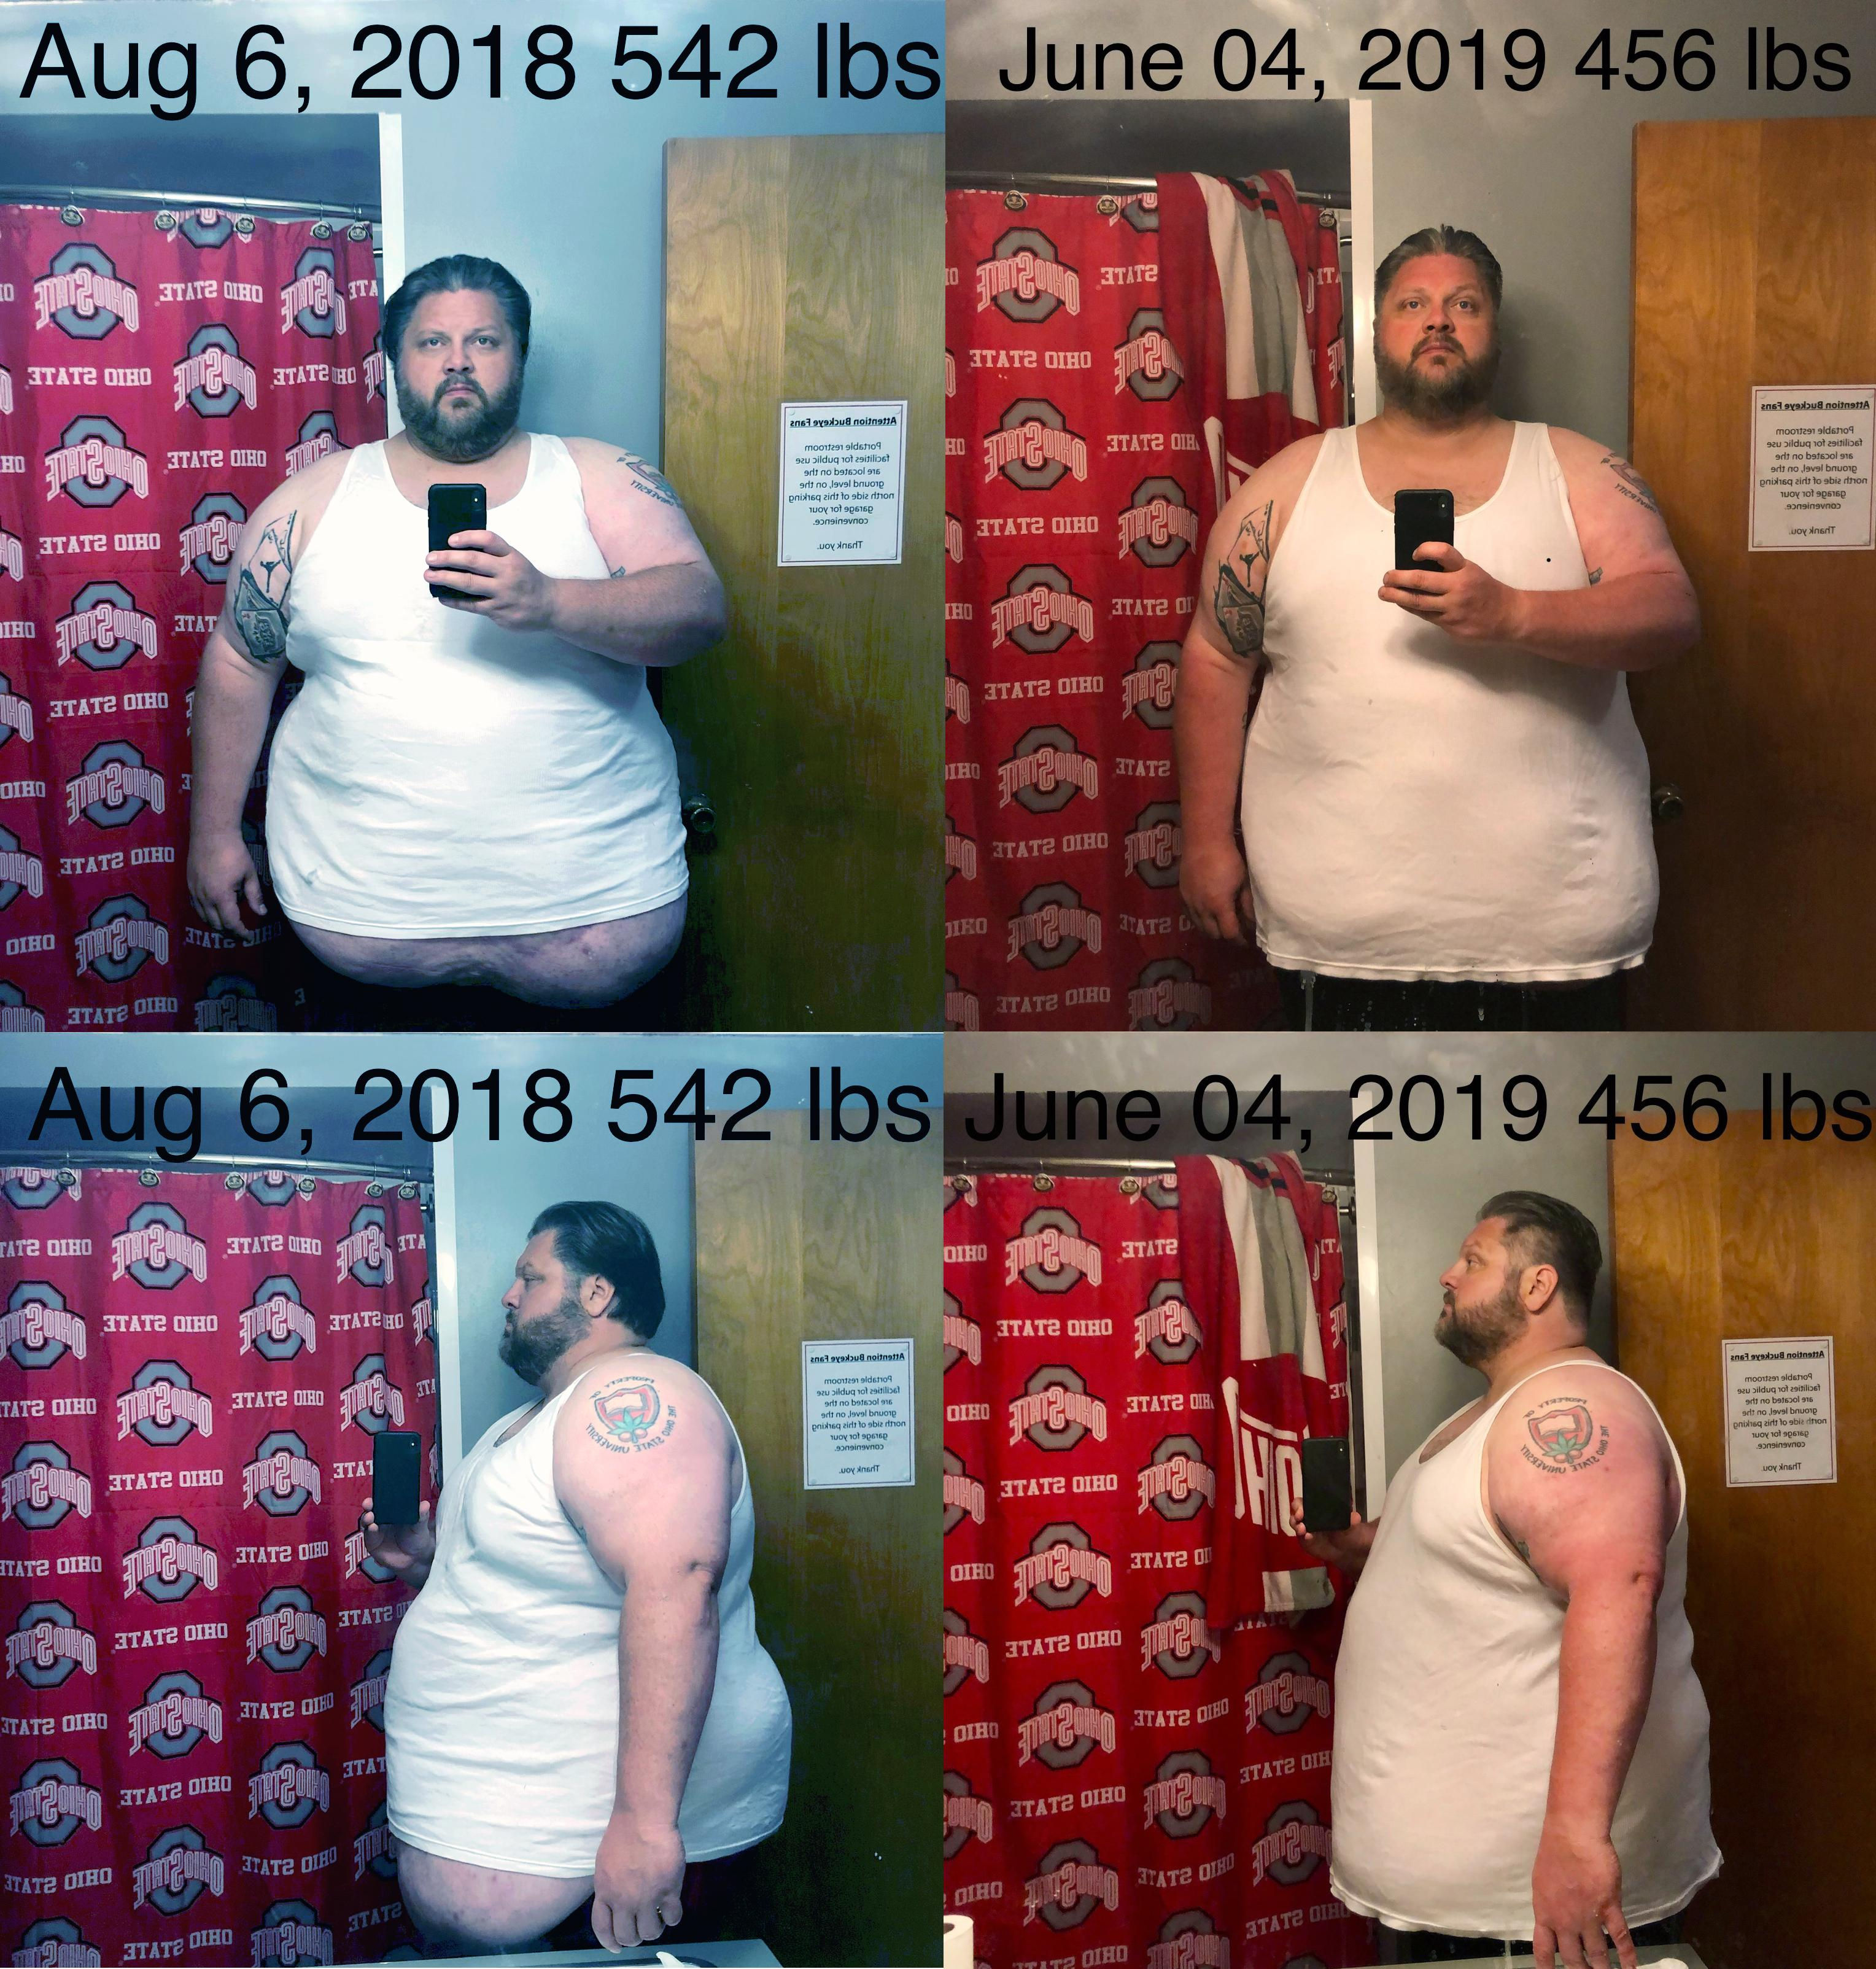 6 foot 1 Male 86 lbs Fat Loss Before and After 542 lbs to 456 lbs